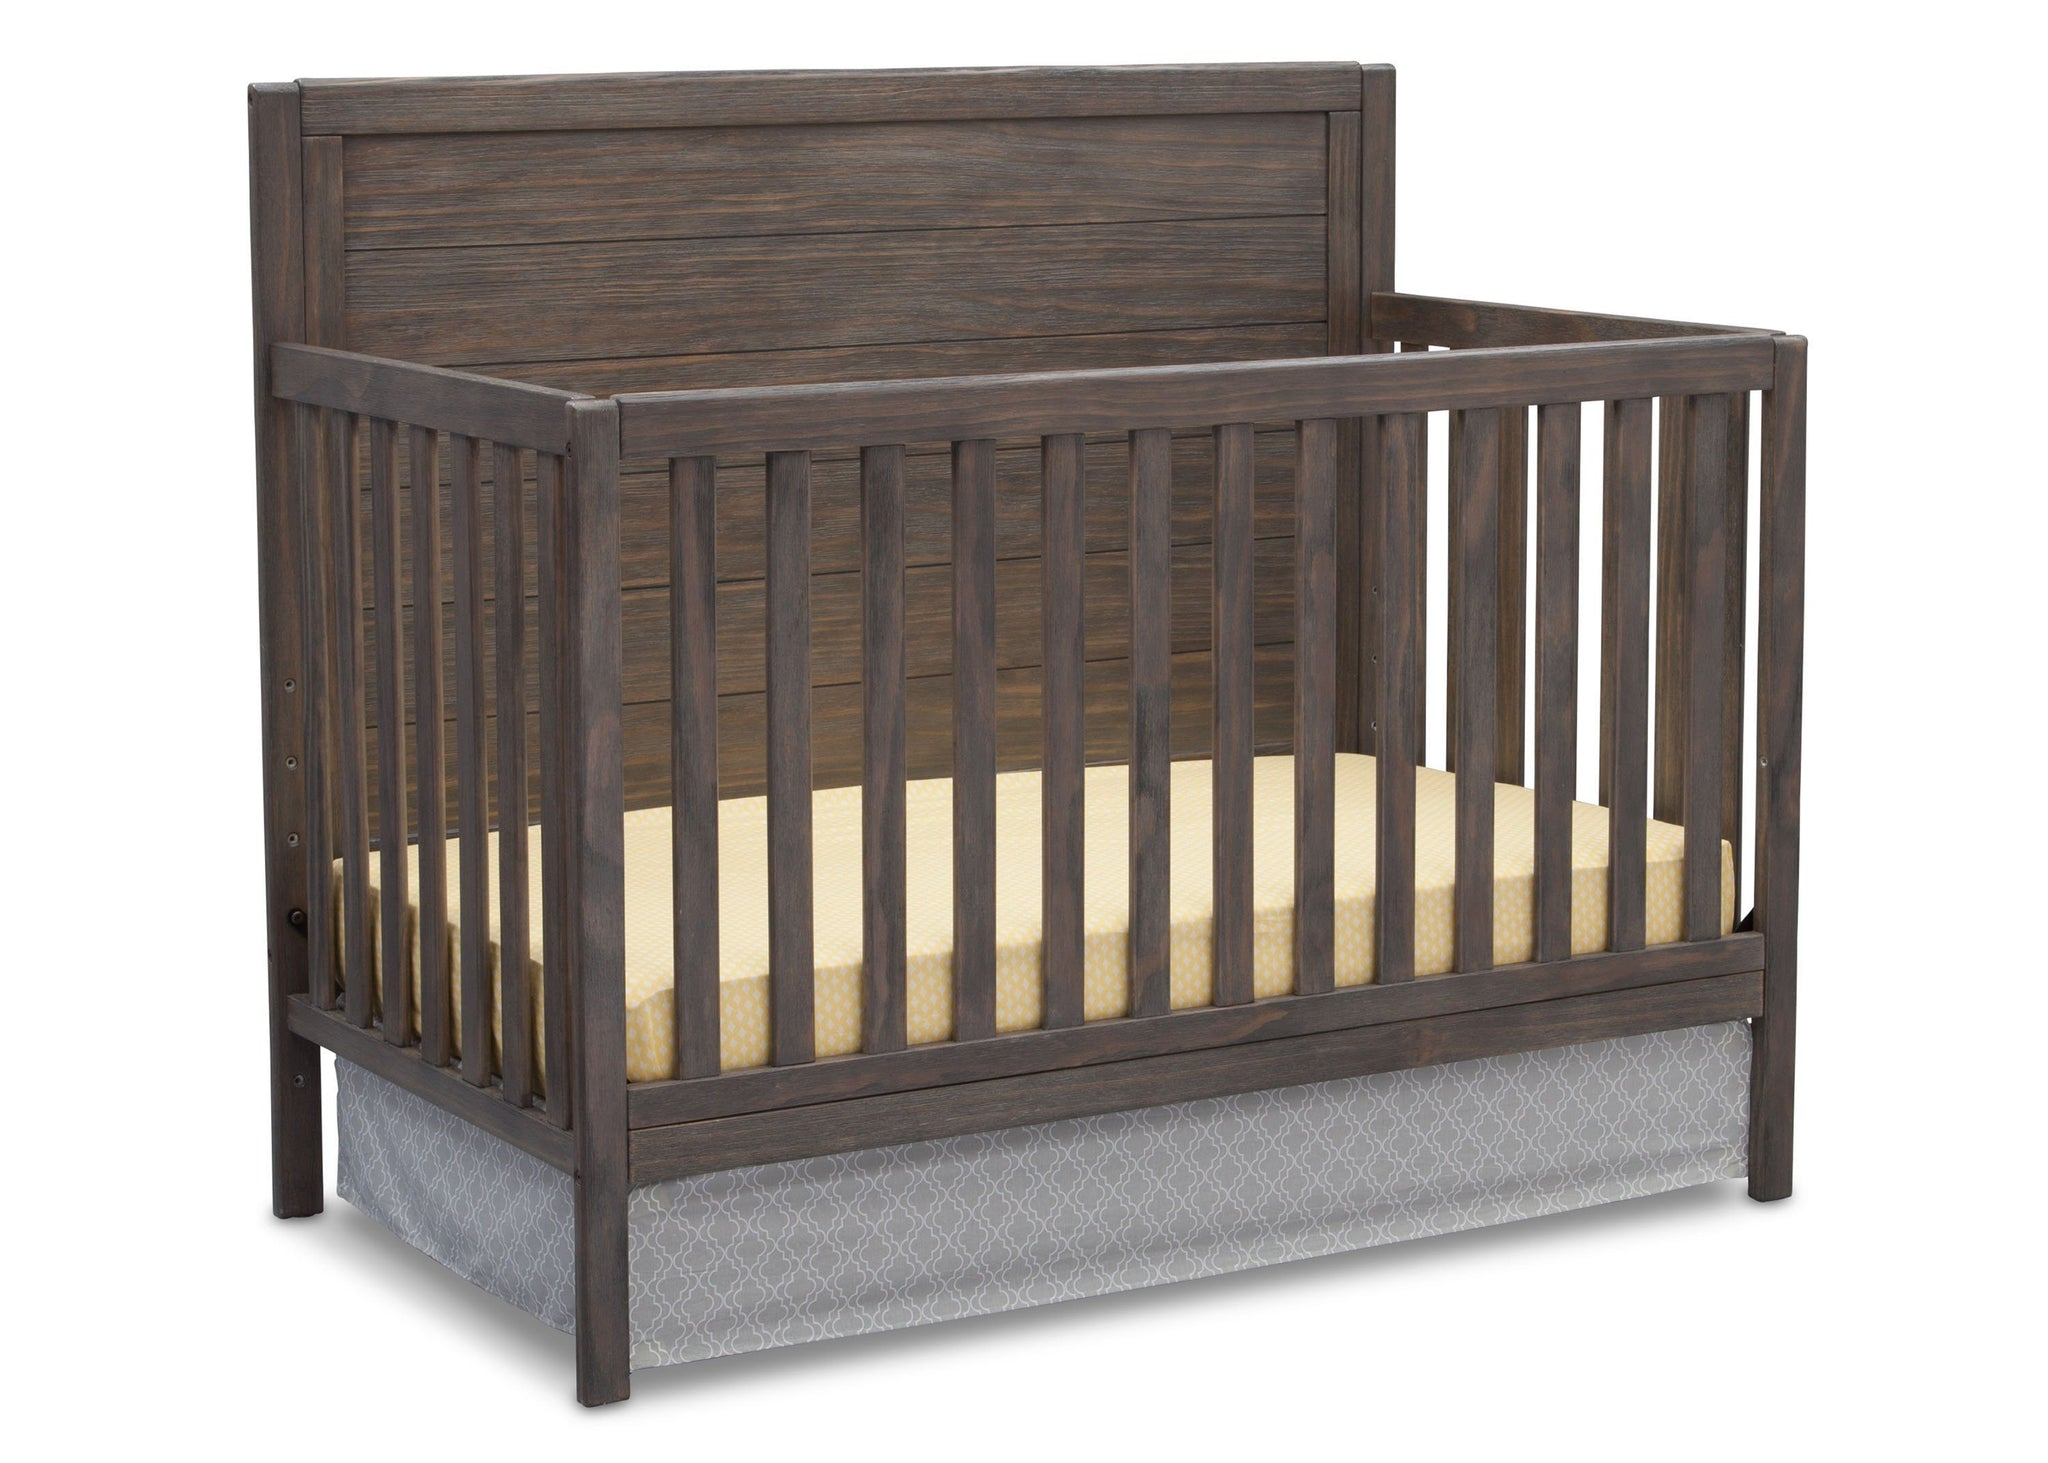 Serta Rustic Grey (084) Cambridge 4-in-1 Convertible Crib, Angled View a3a